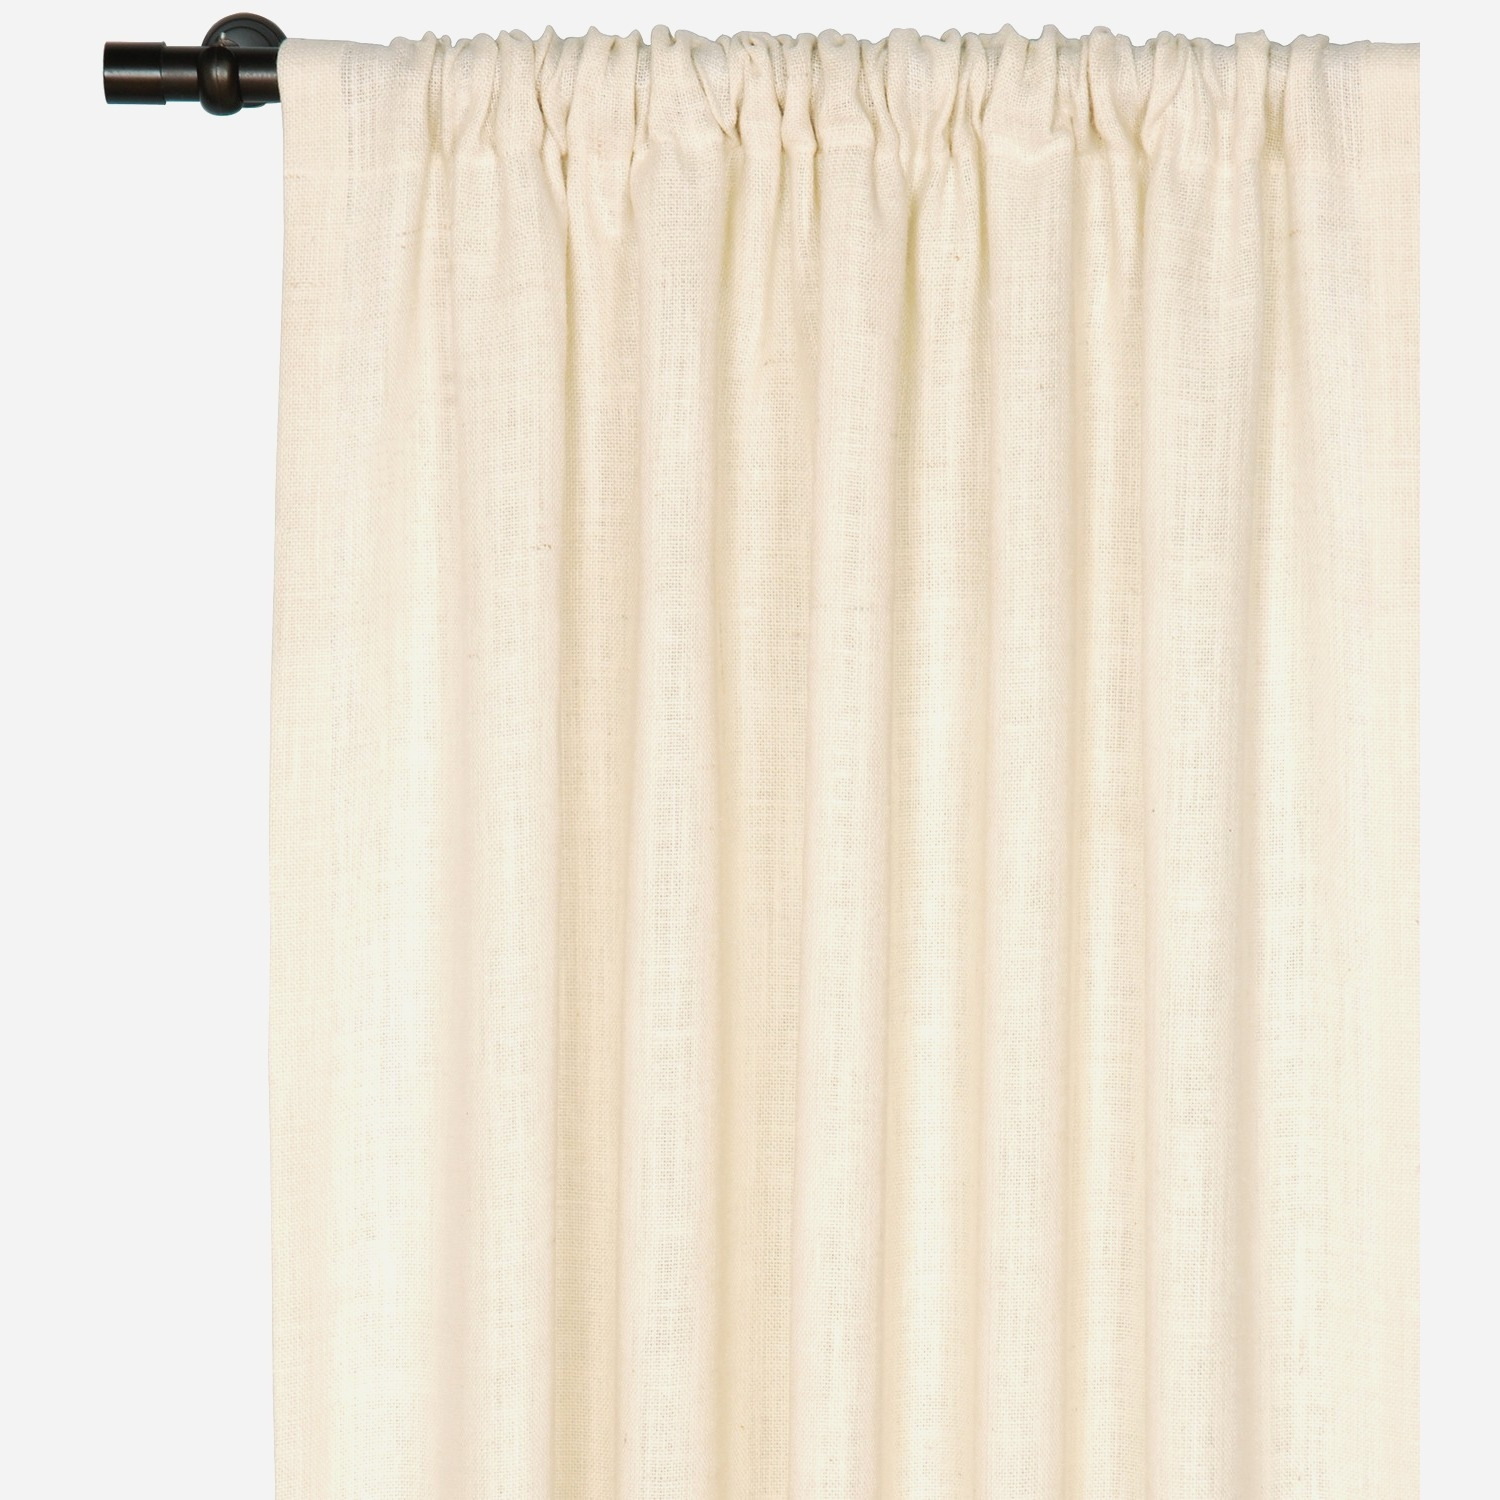 pink blue pleat shower white navy pencil blackout yellow gingham curtains curtain checkered and